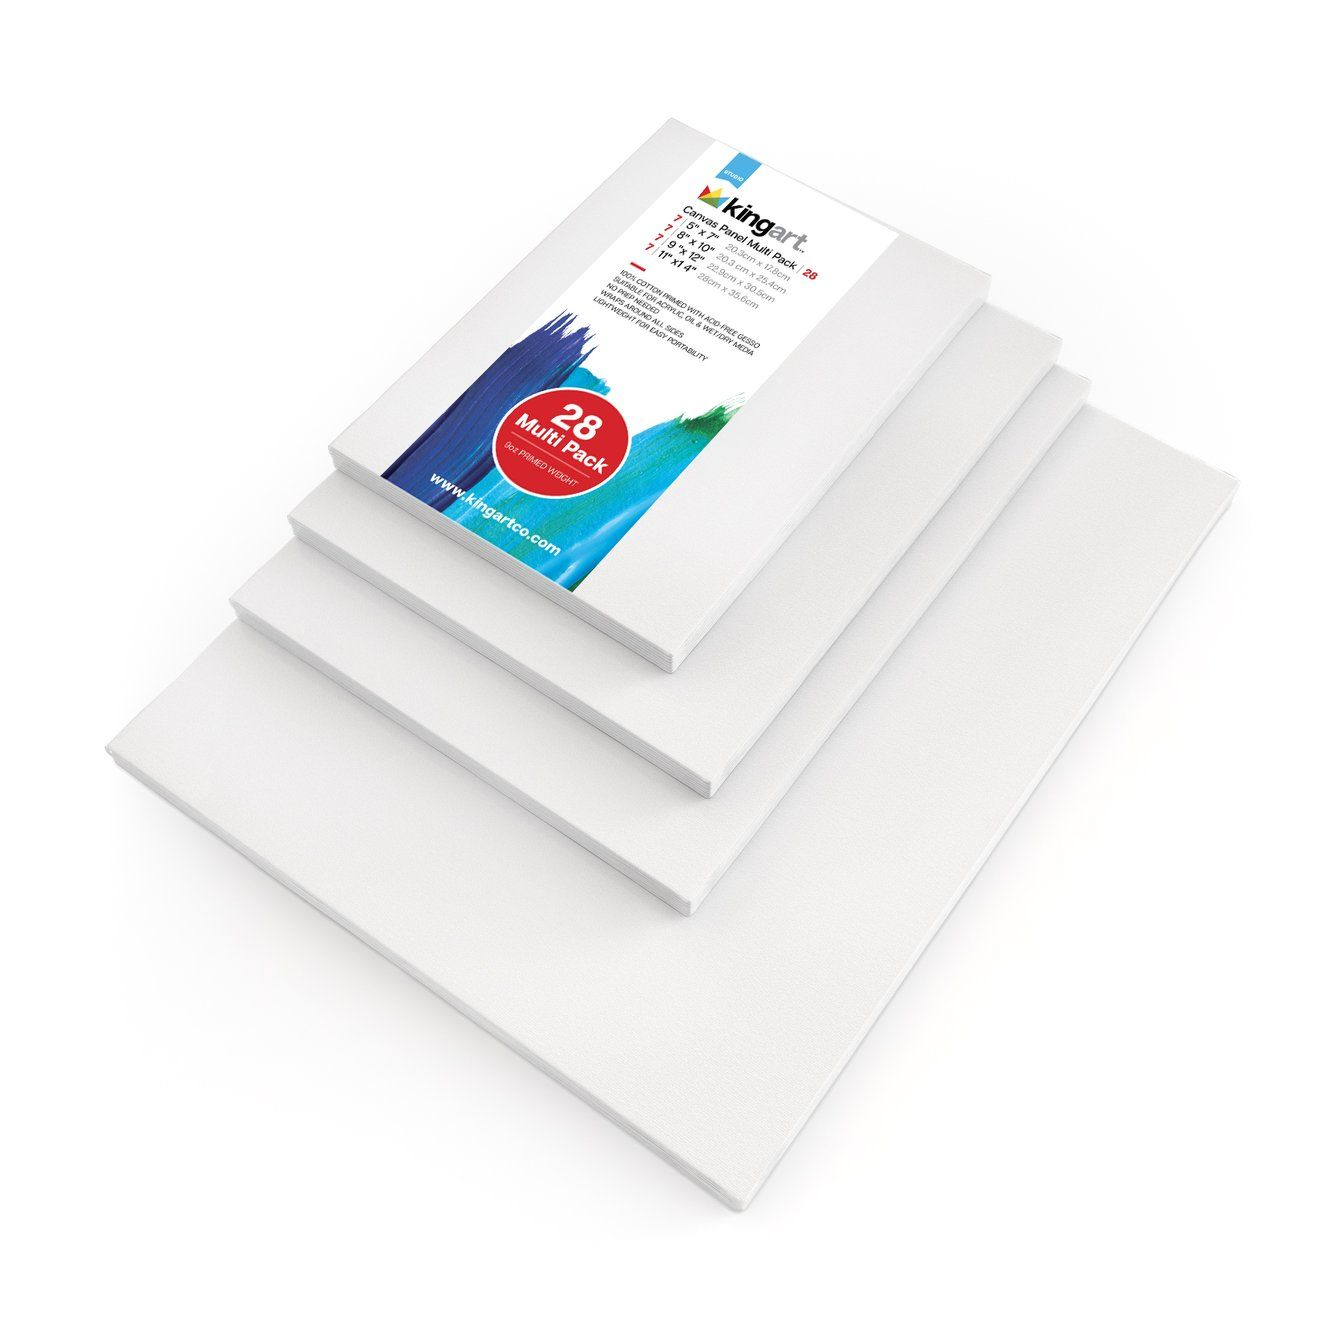 Canvas Panel Multi 28 Pack 7 Each 5 X 7 8 X 10 9 X 12 11 X 14 In 2020 Canvas Packing Canvas Board